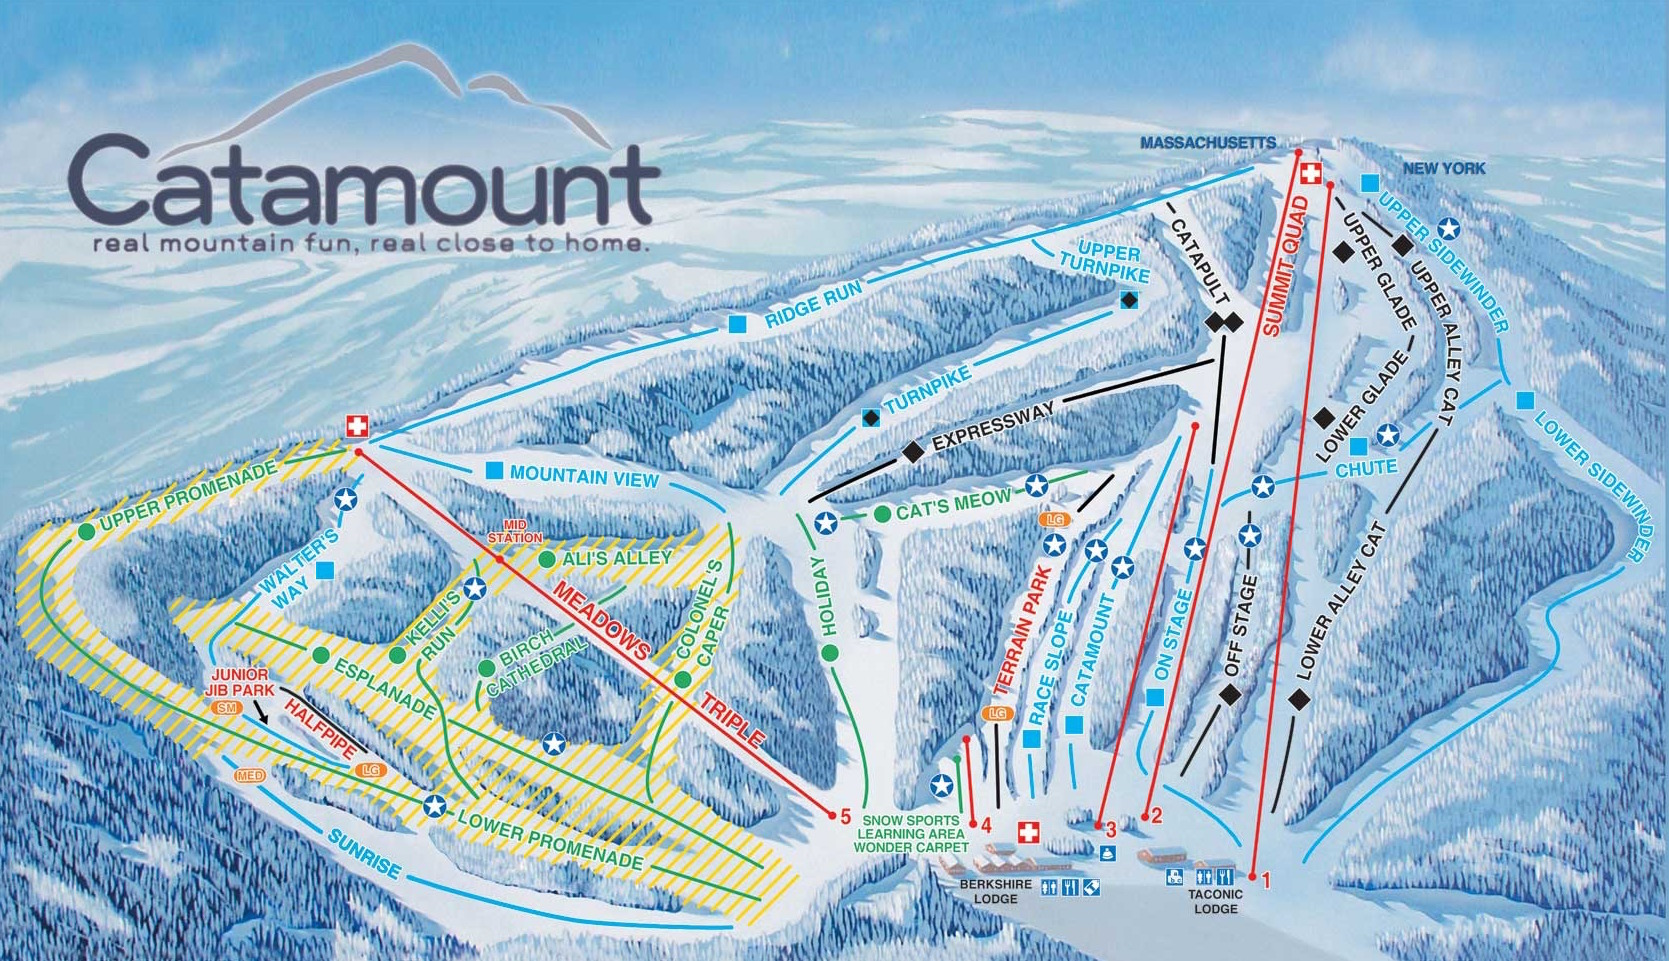 Catamount Ski Area trail map